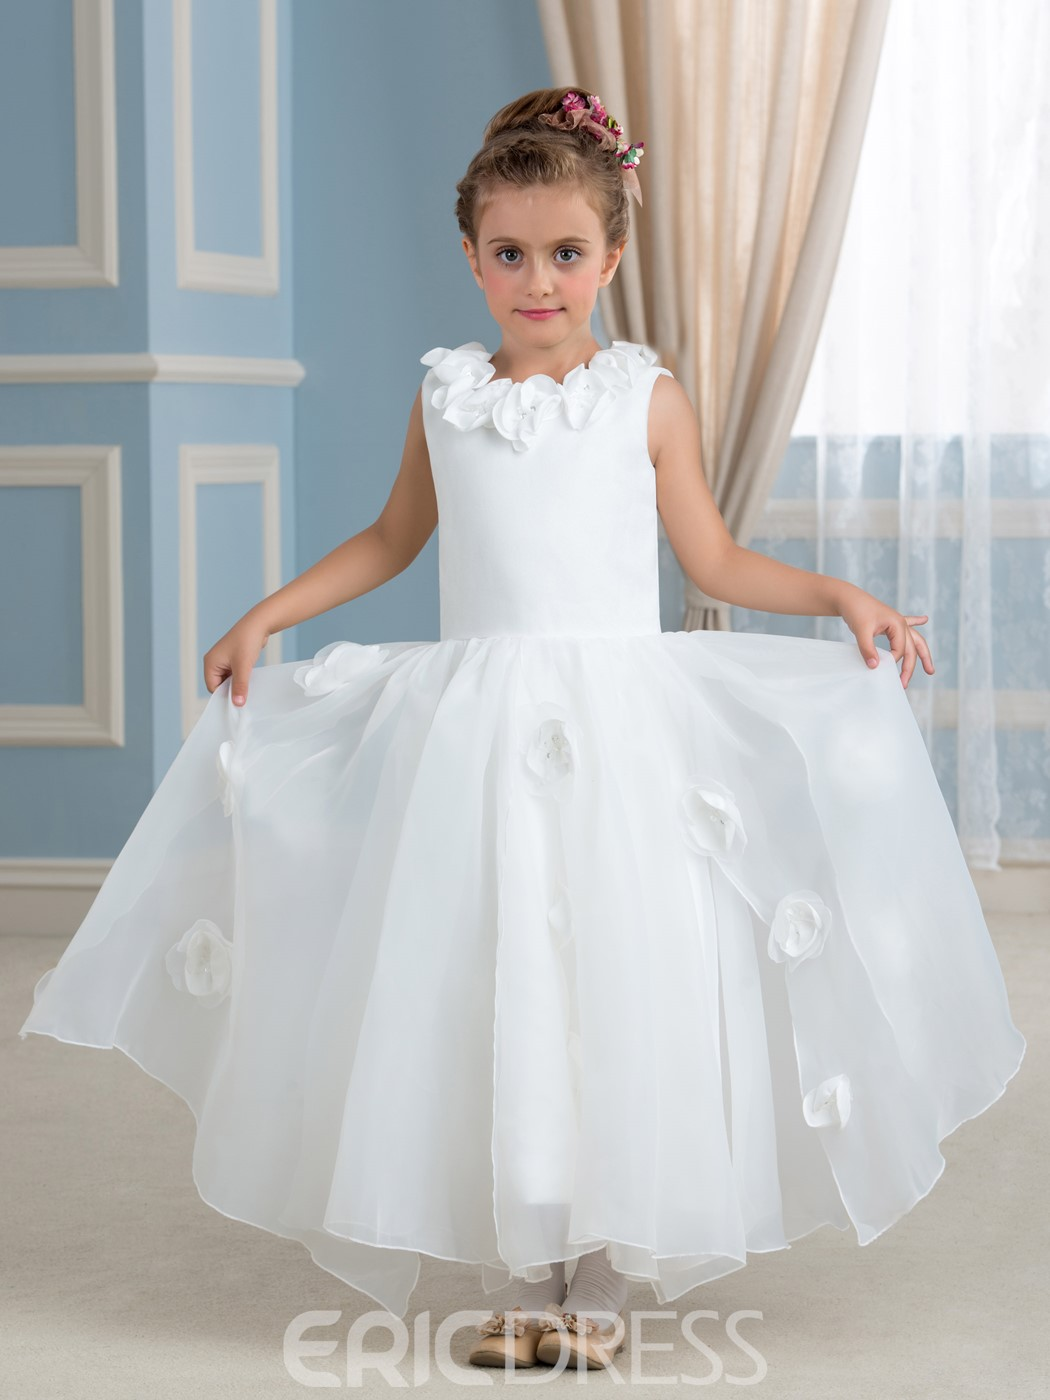 Ericdress High Quality Flowers Jewel A Line Flower Girl Dress